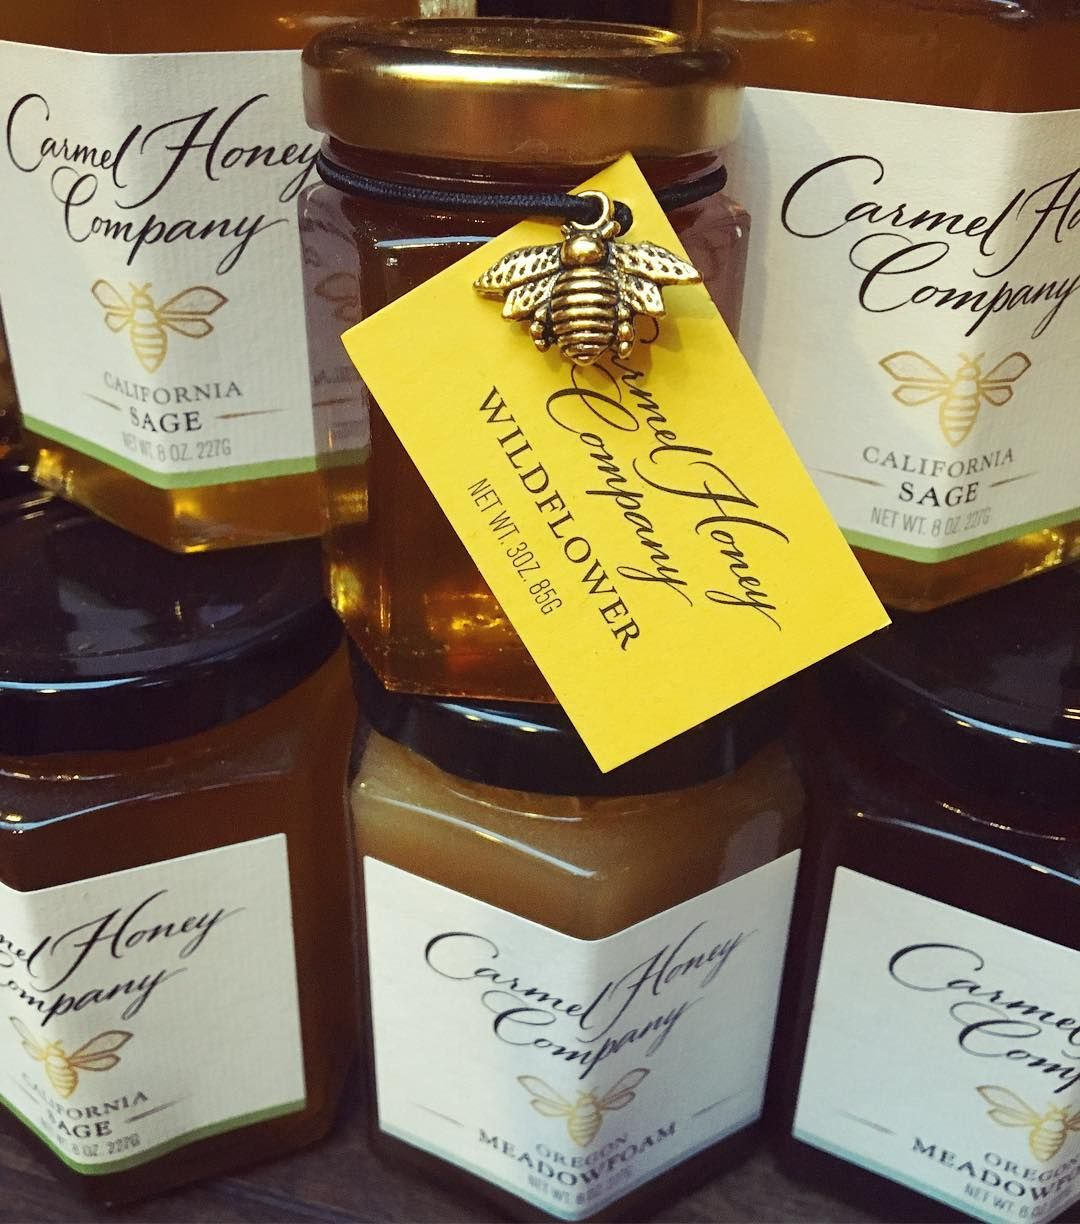 Carmel Honey Company grew out of a passion for bees and